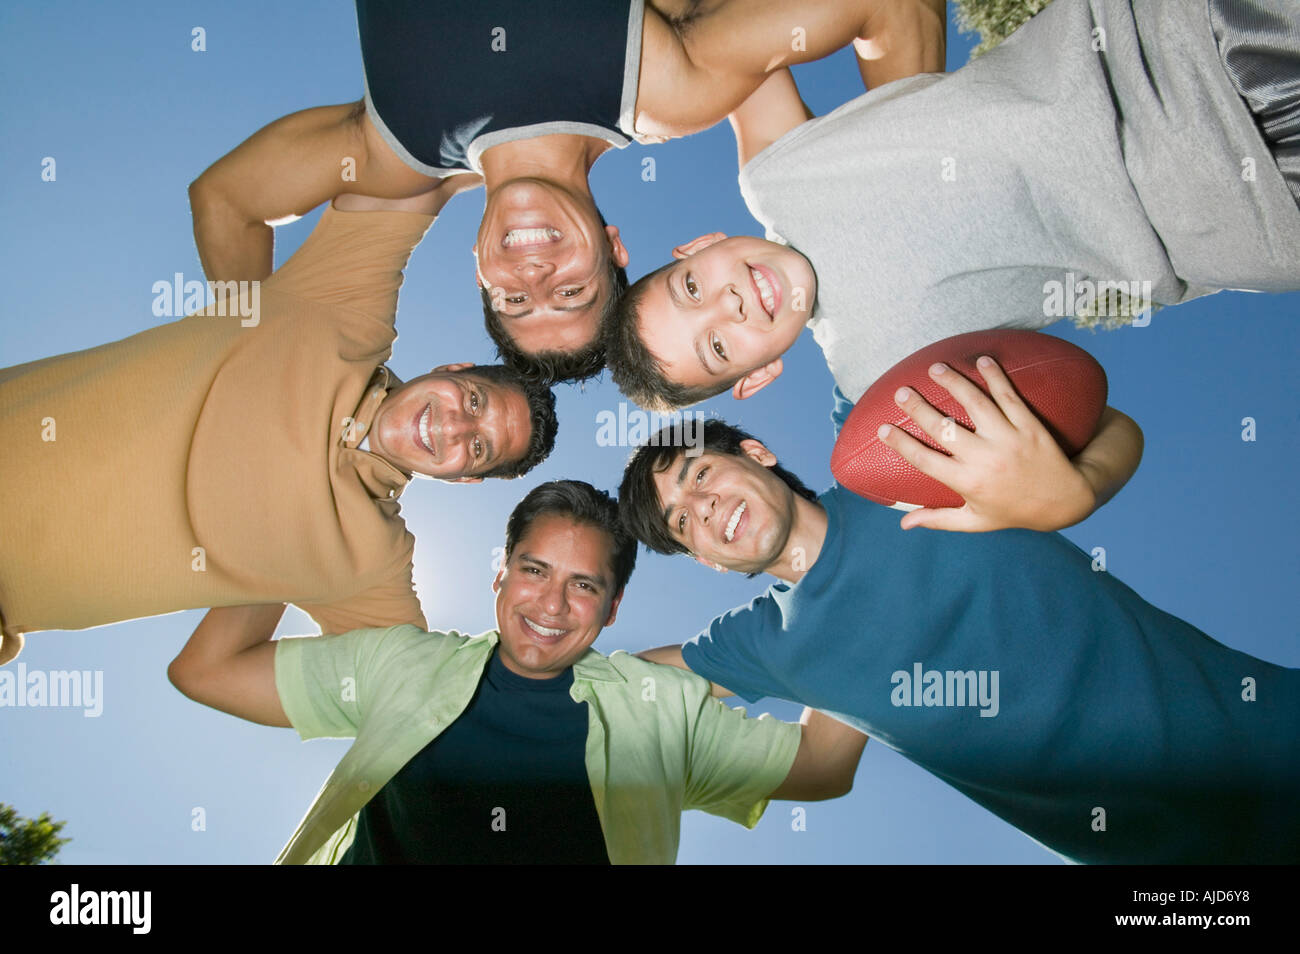 Boy (13-15) holding football, with brothers and father in huddle, view from below. - Stock Image